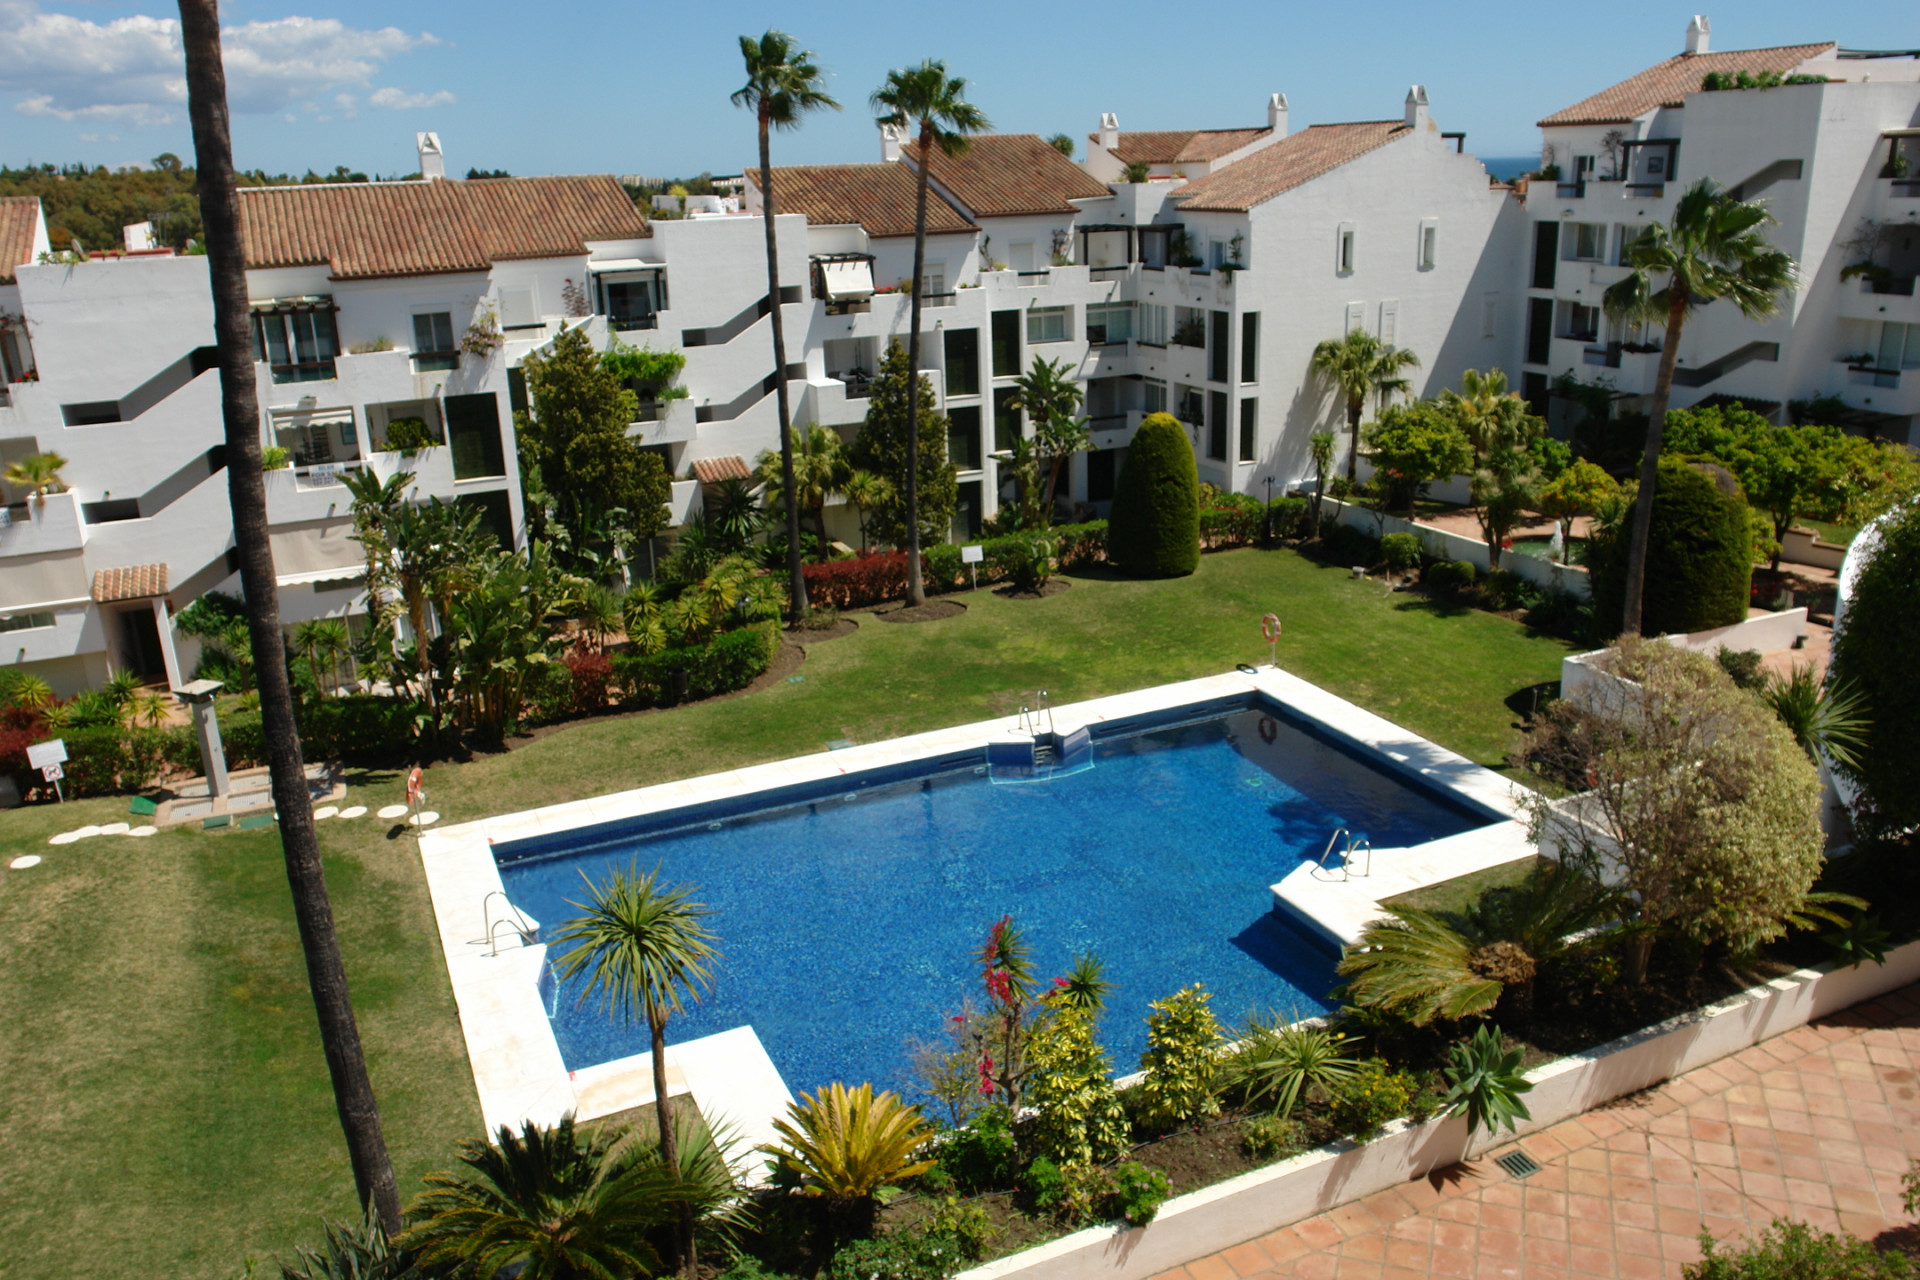 Charmant penthouse in Estepona